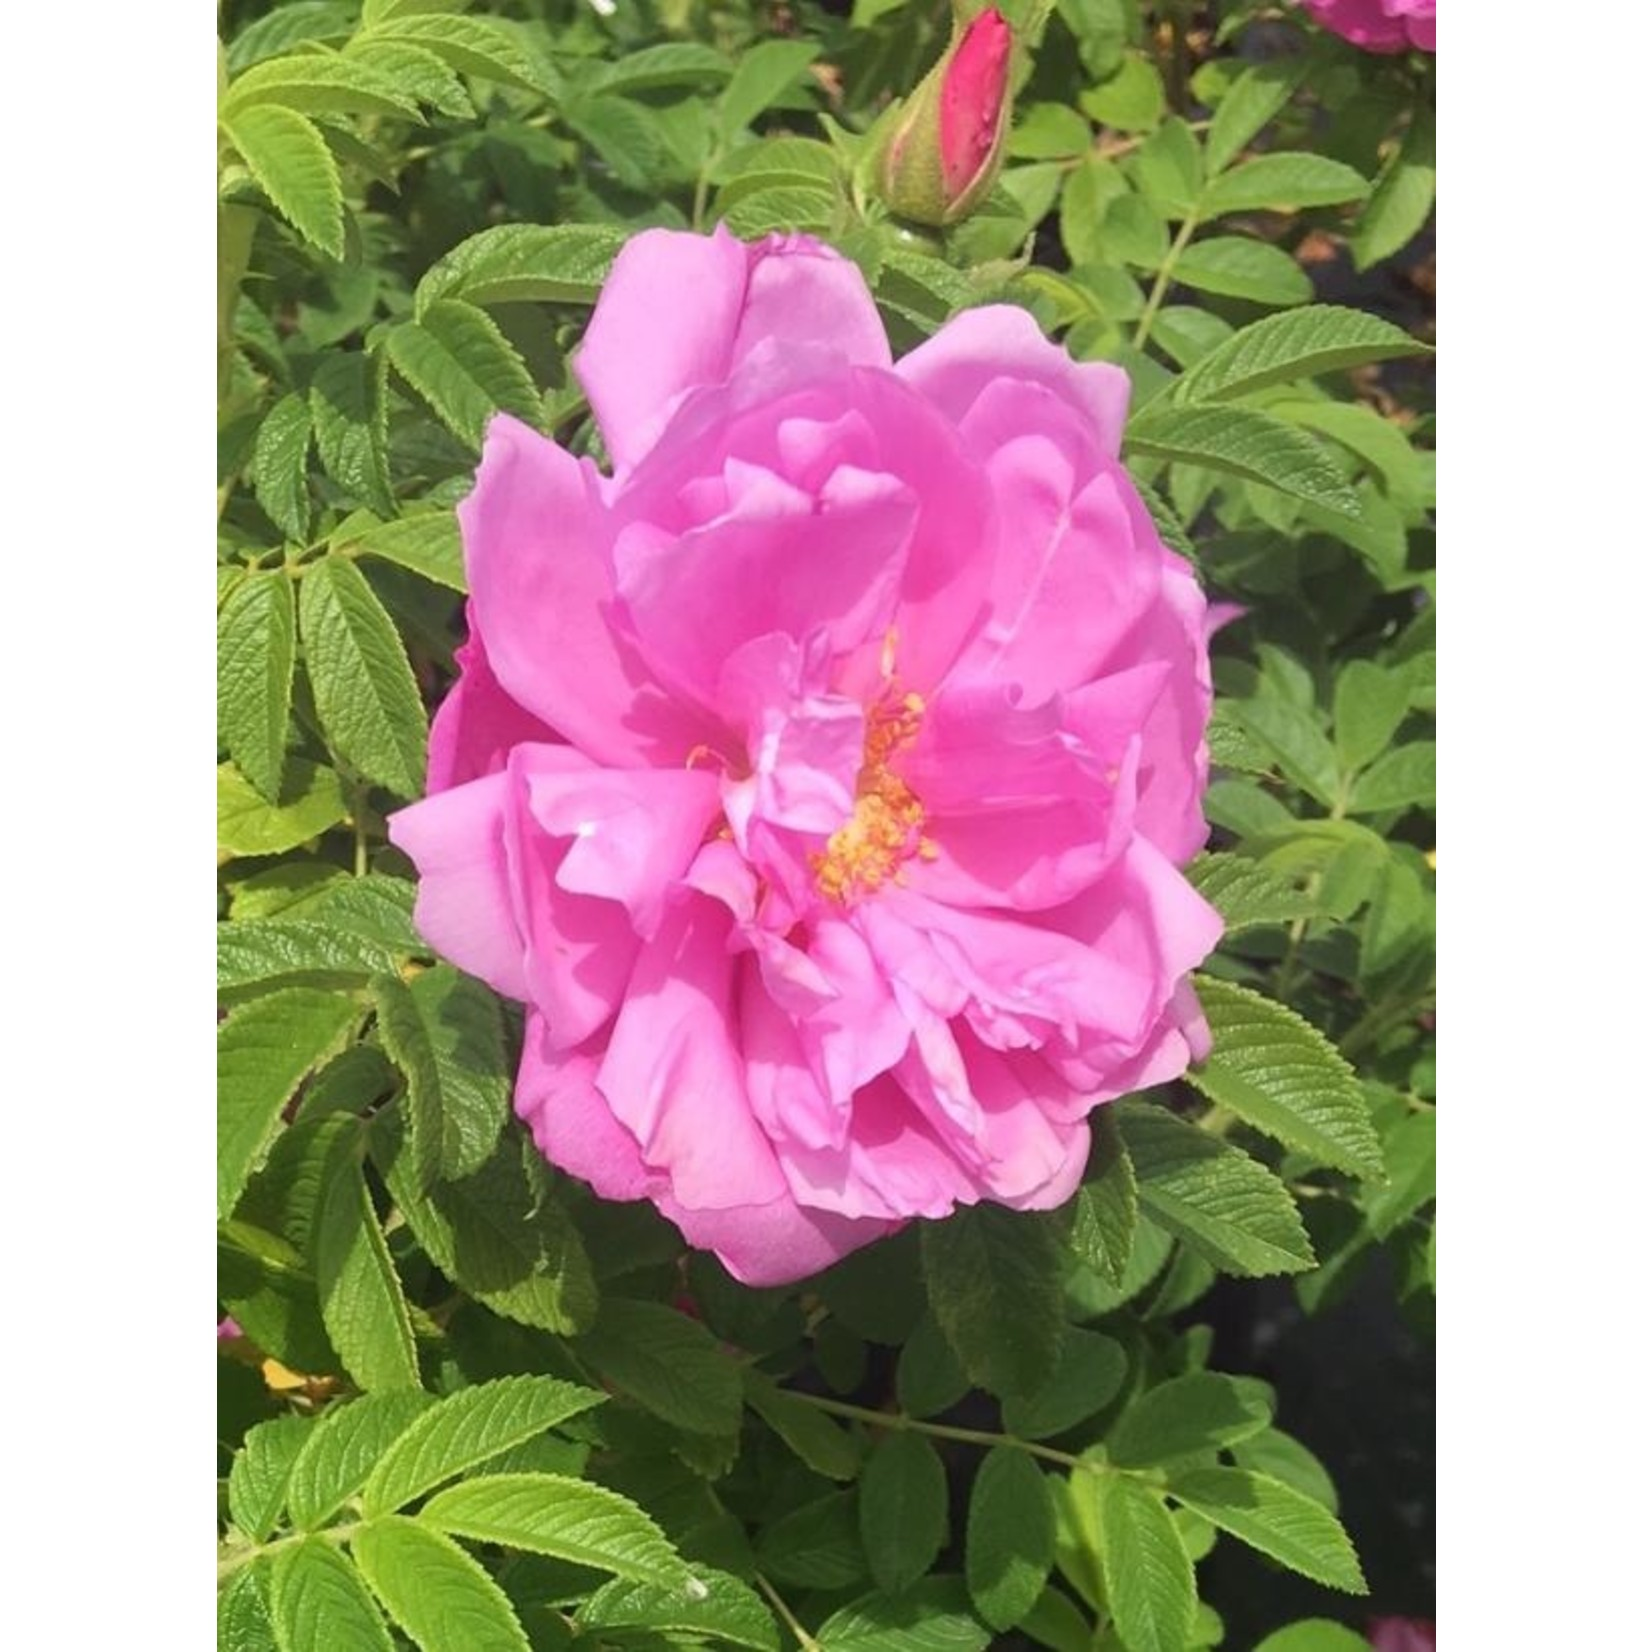 Rose - Showy Pavement Pink - 2 gal